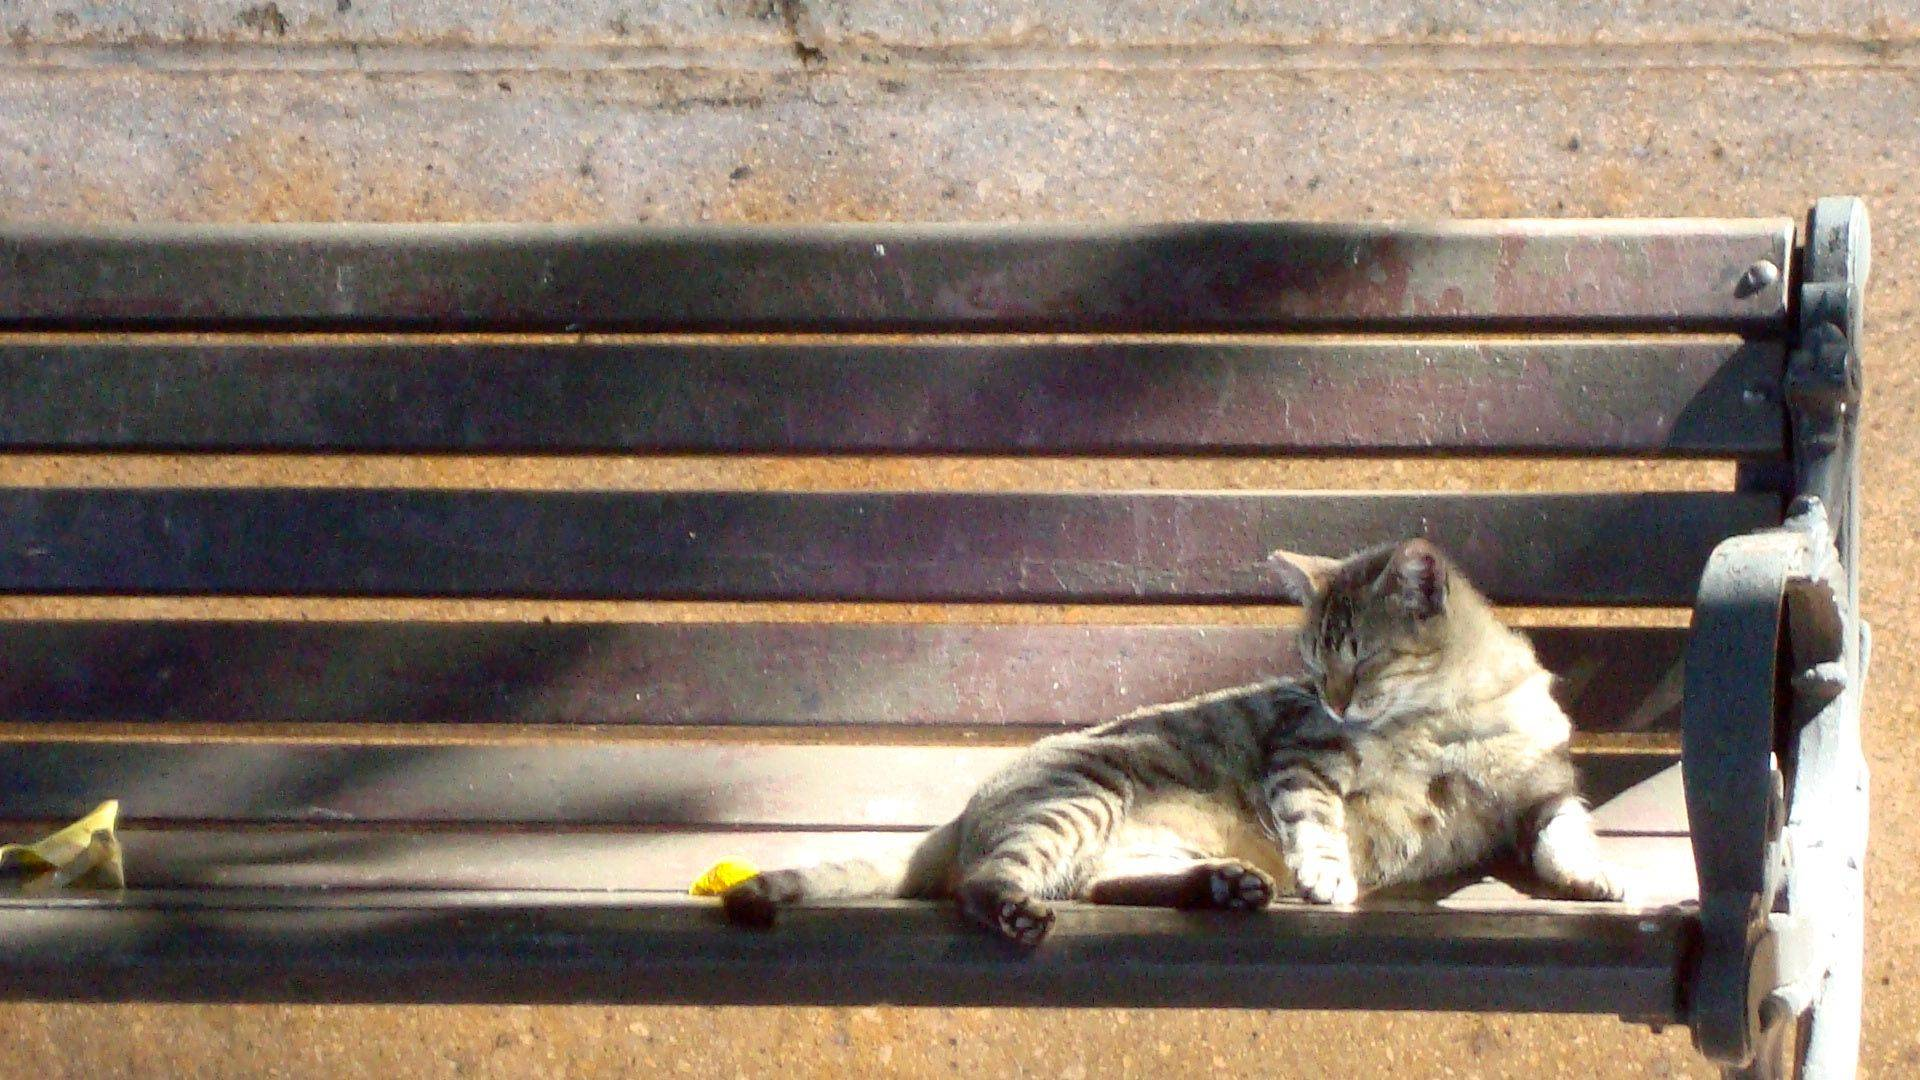 This photo was taken in San Juan, Puerto Rico while on vacation. They have a large population of cats and I caught this one napping on a bench in a park.